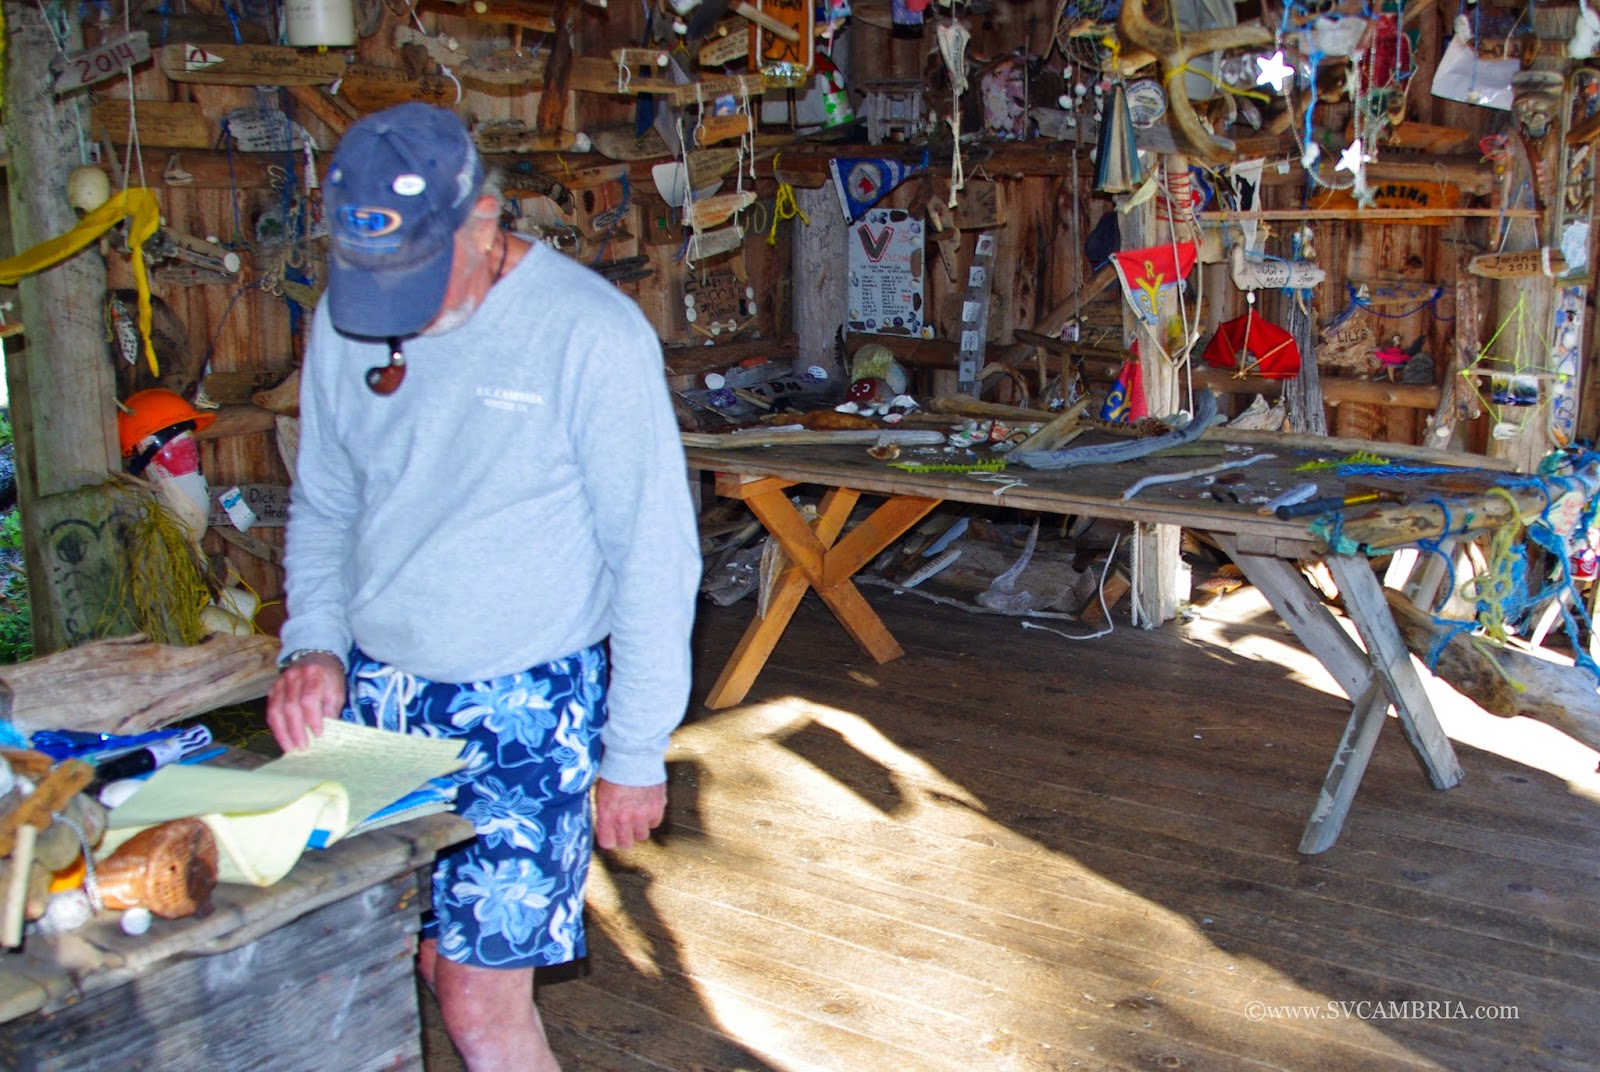 David reading the guest book at the kayakers' cabin in Octopus Islands Marine Park.